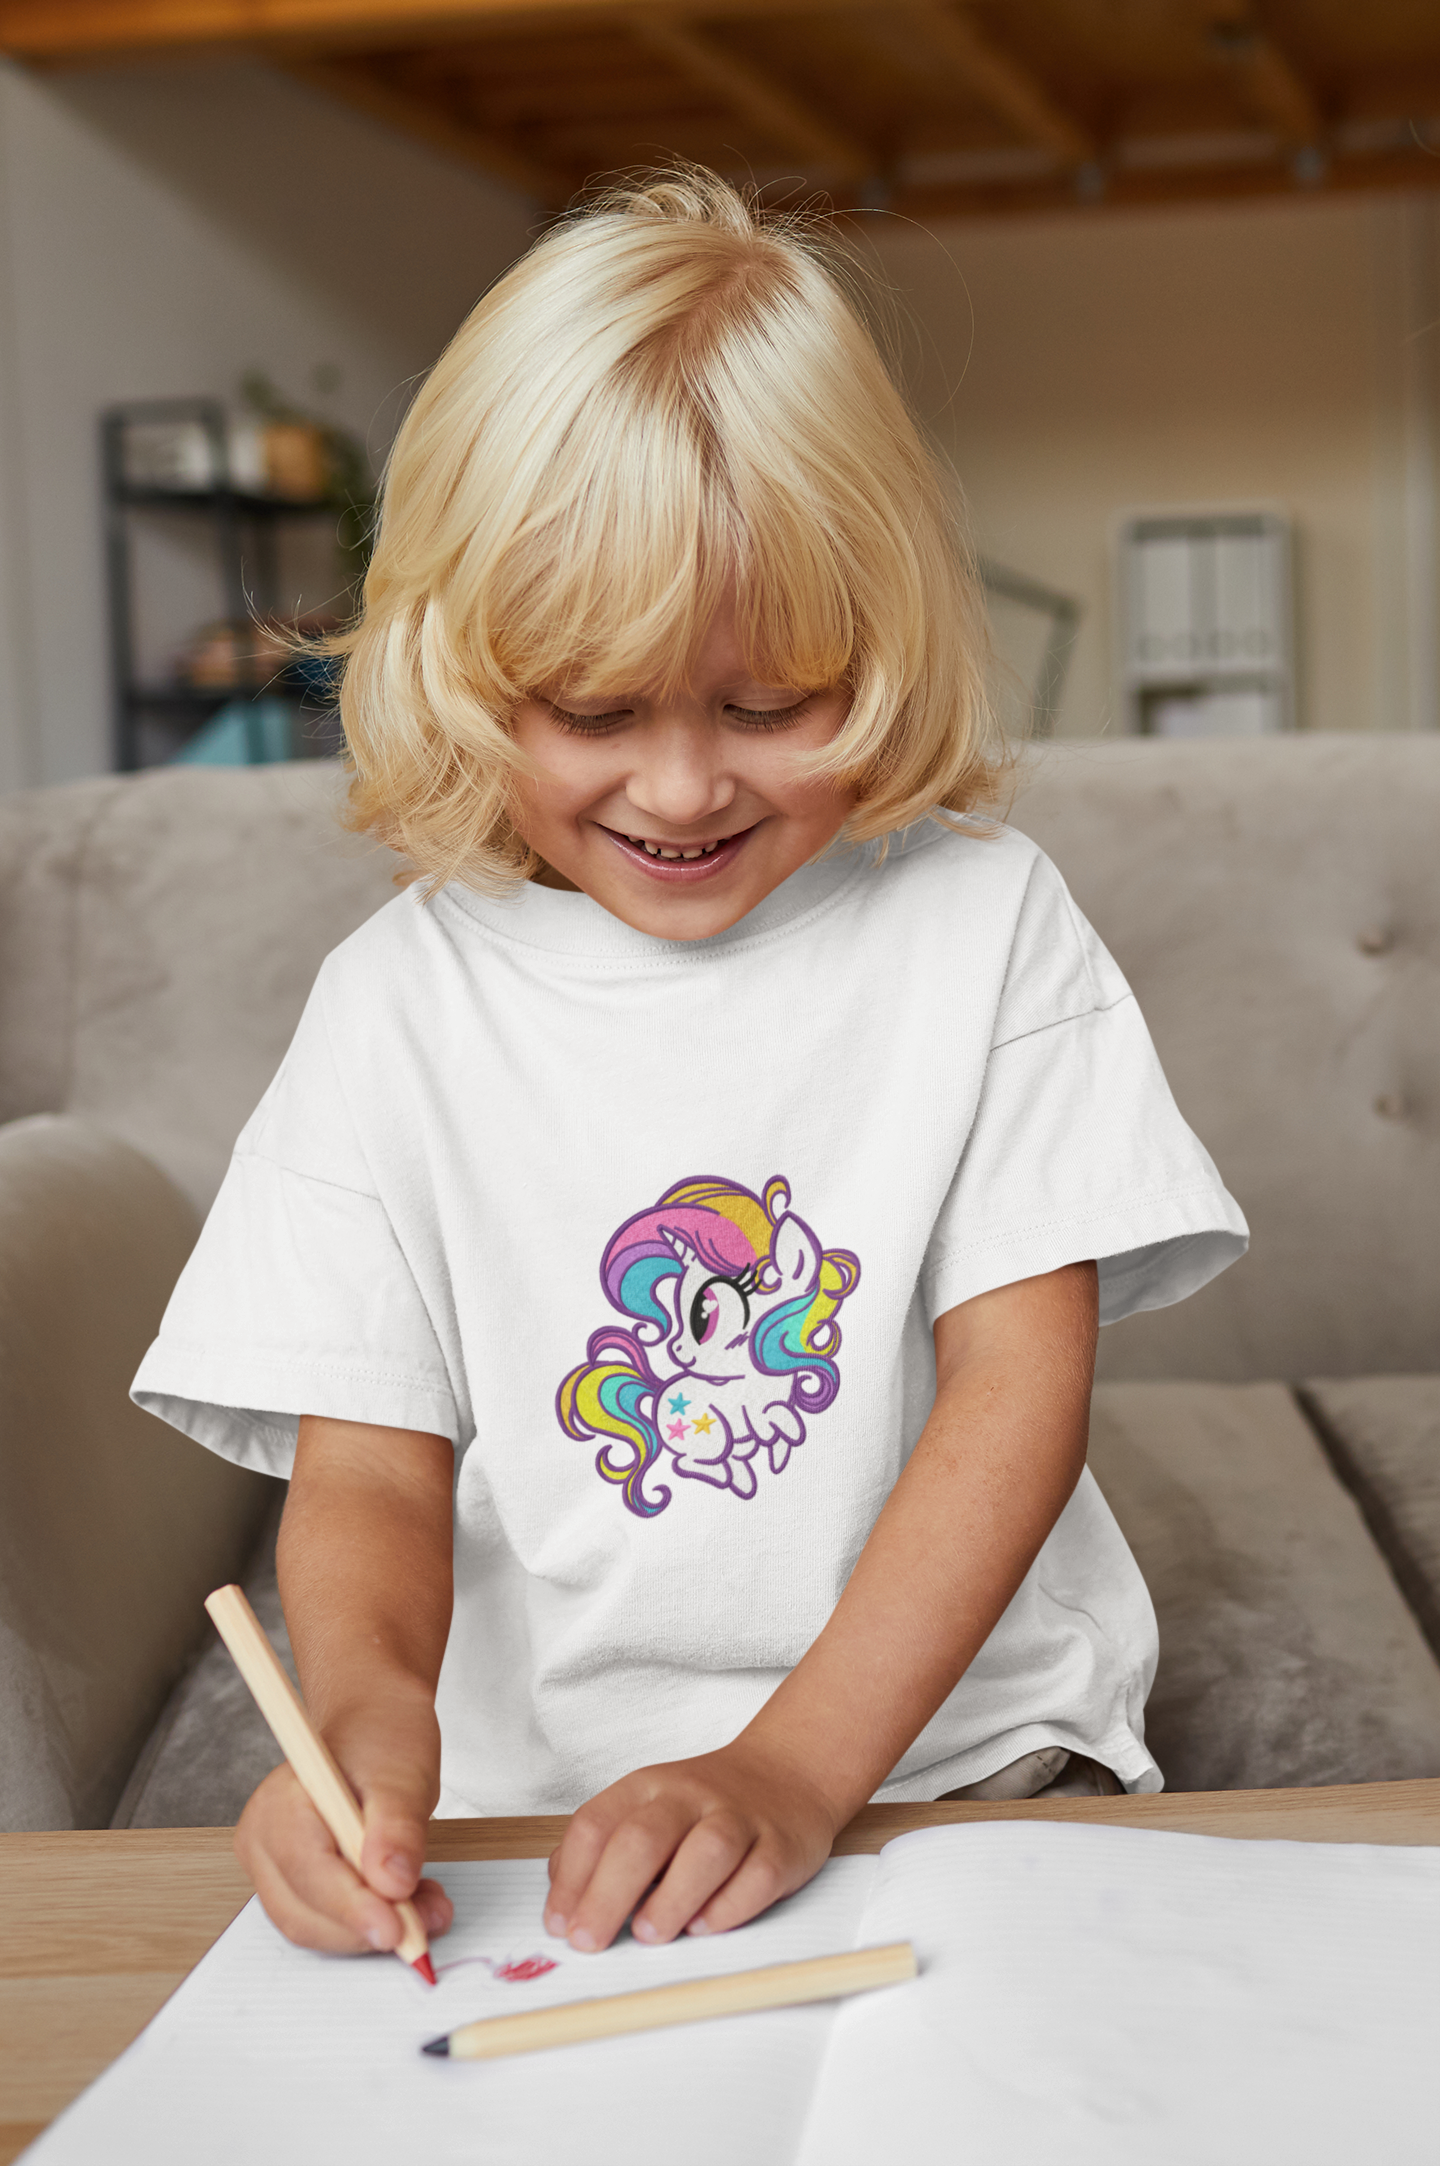 Embroidered t-shirt with Rainbow pony design